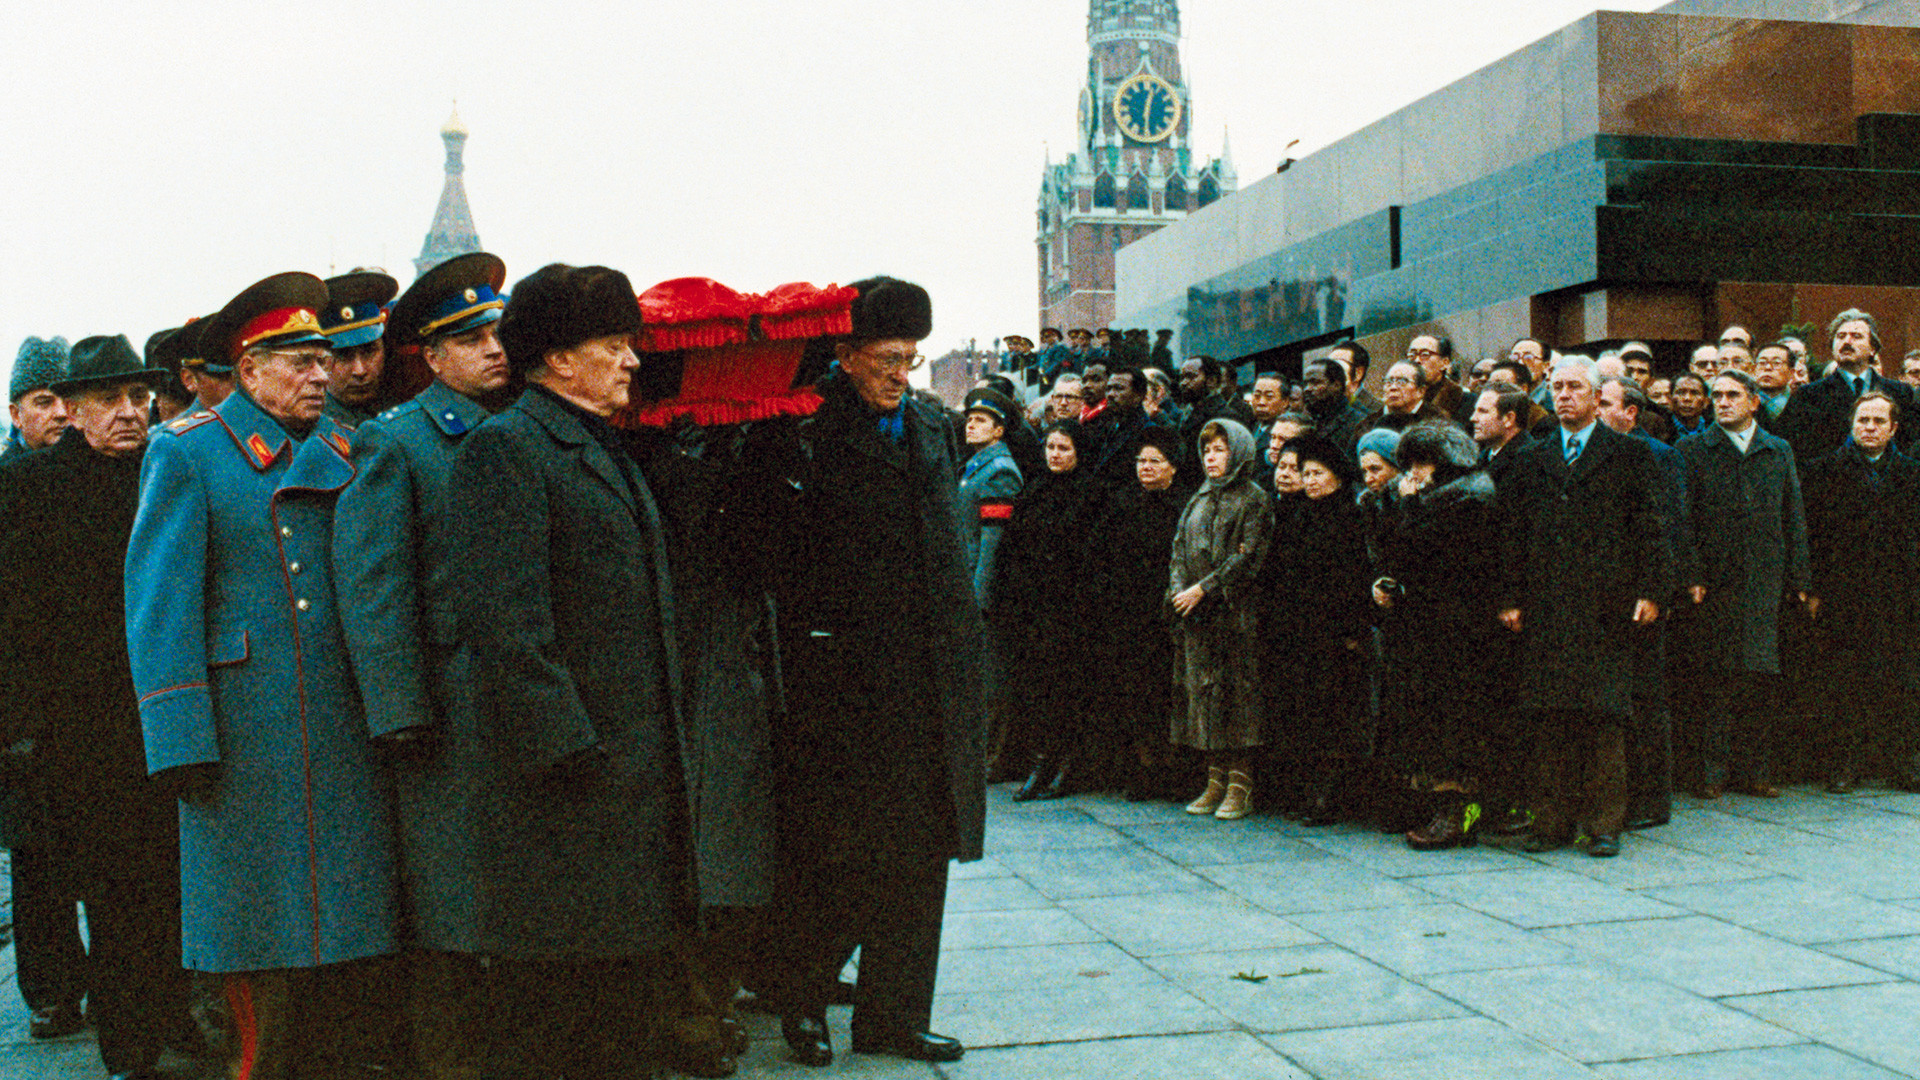 Leaders of the Communist Party of Russia bear the casket of Leonid Brezhnev, former Communist Party leader, in front of the Tomb of Lenin in Red Square during the funeral procession.